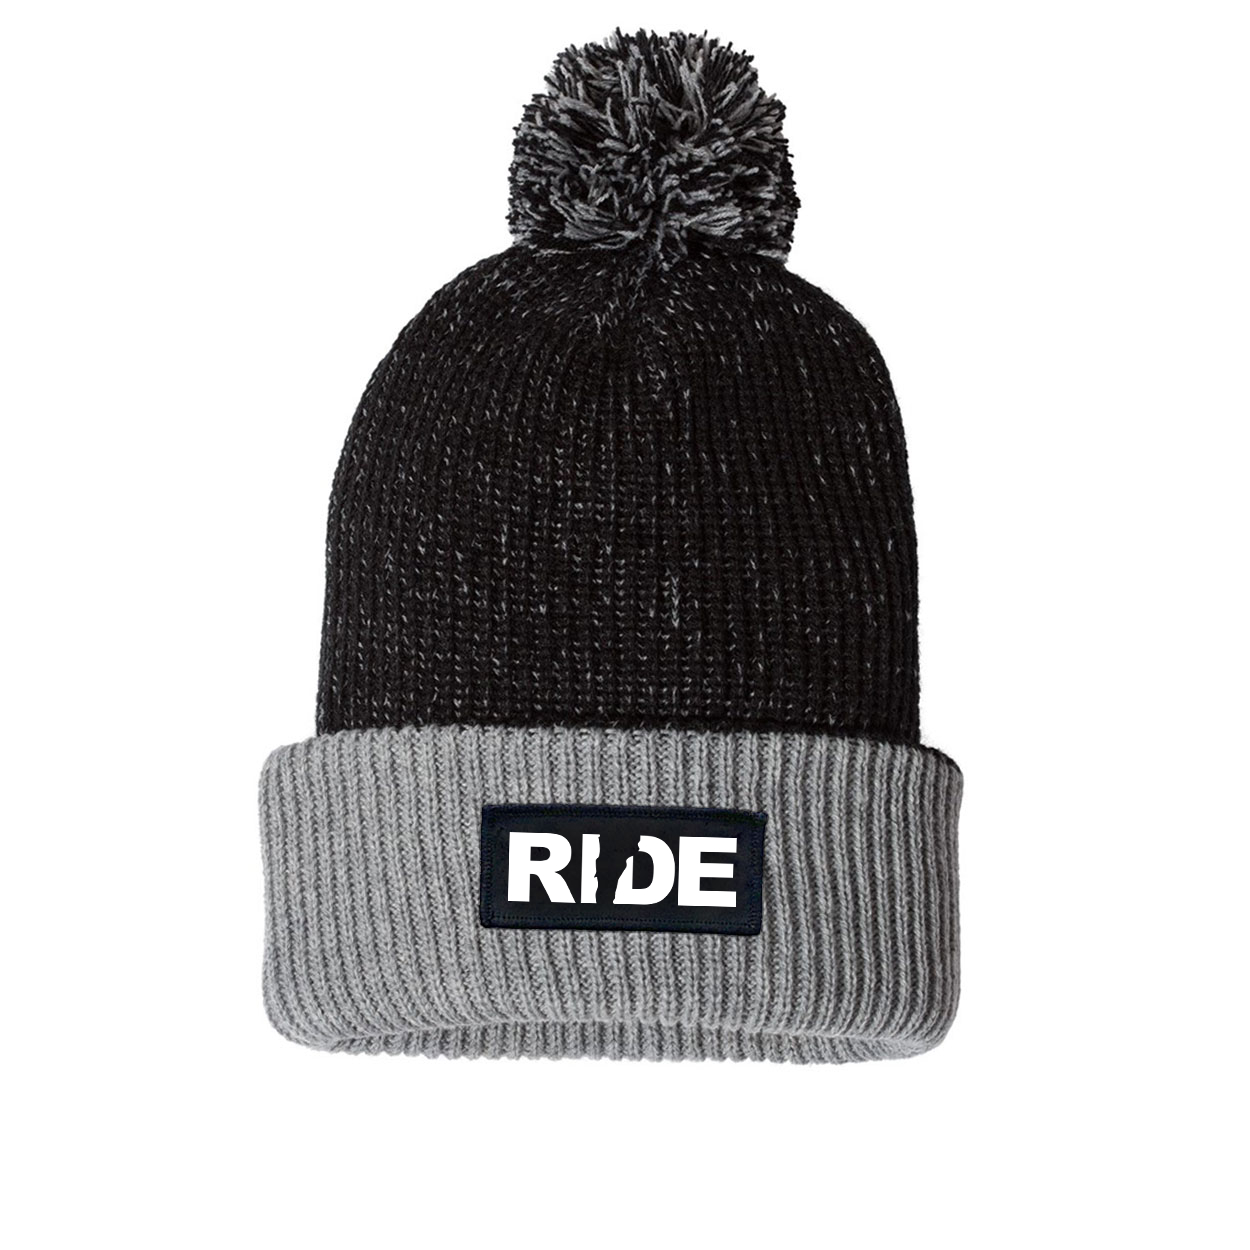 Ride Vermont Night Out Woven Patch Roll Up Pom Knit Beanie Black/Gray (White Logo)